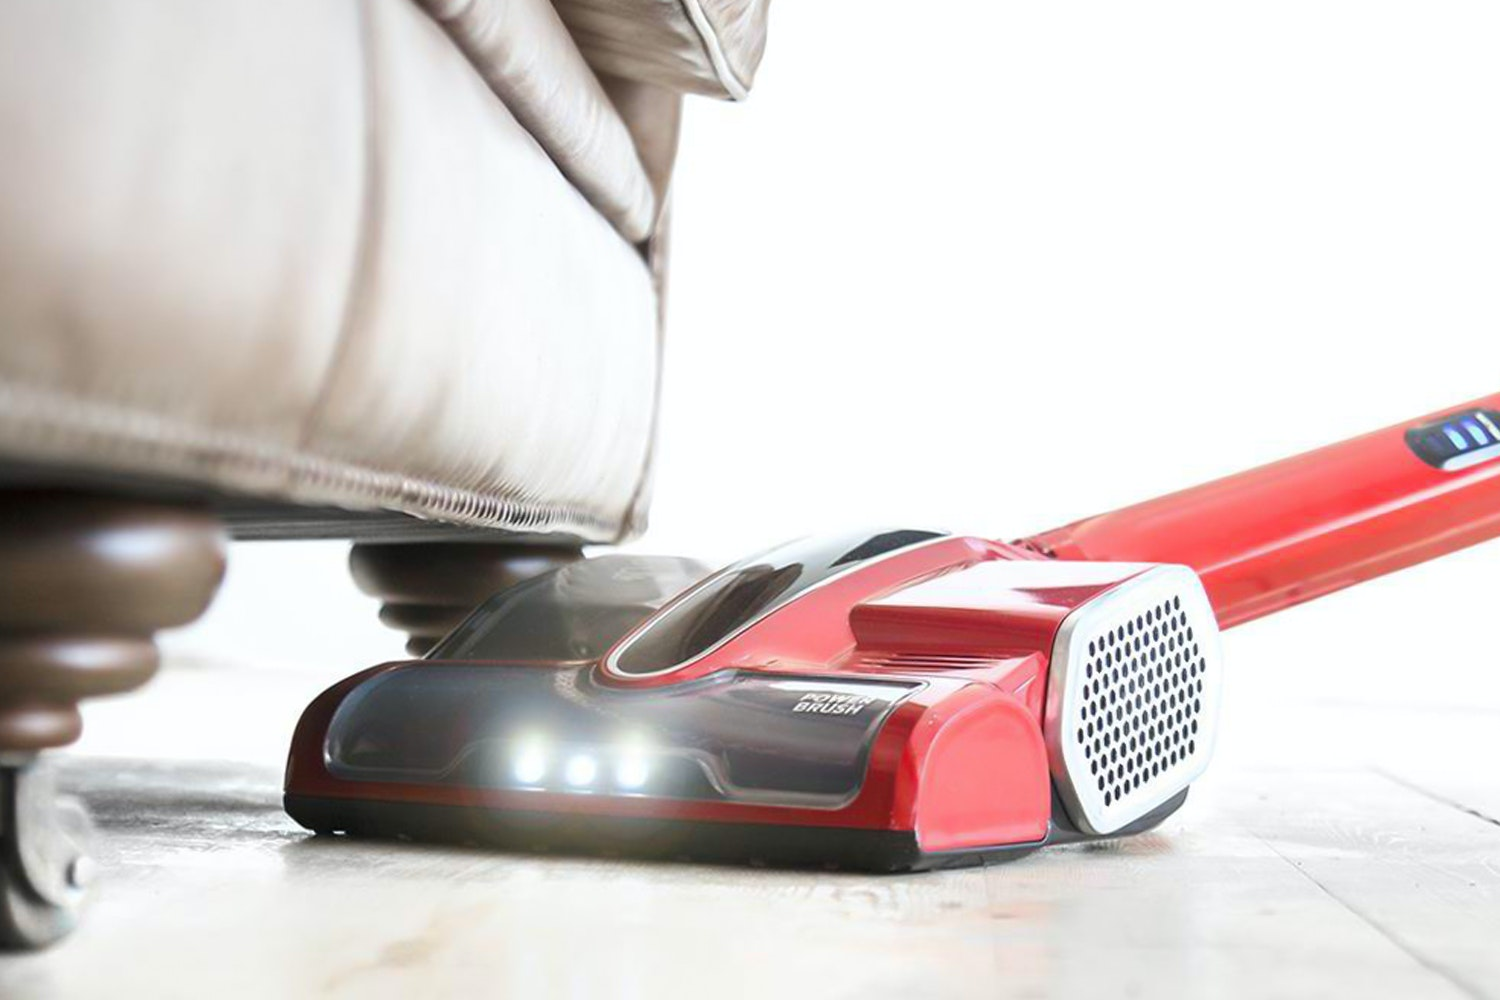 Hoover Sprint Cordless Stick Vacuum Cleaner | Red